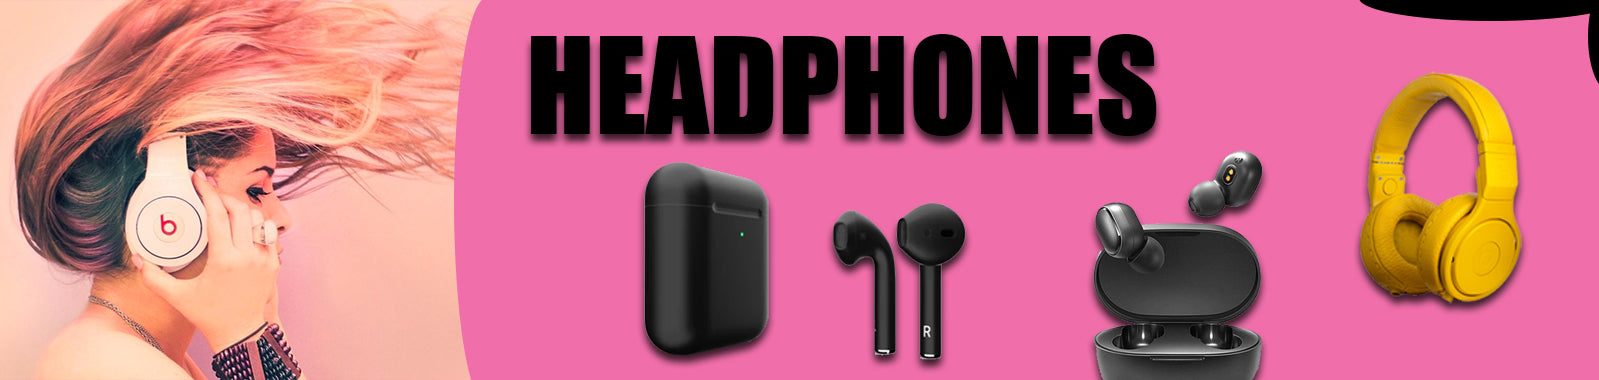 Headphone best price in Pakistan